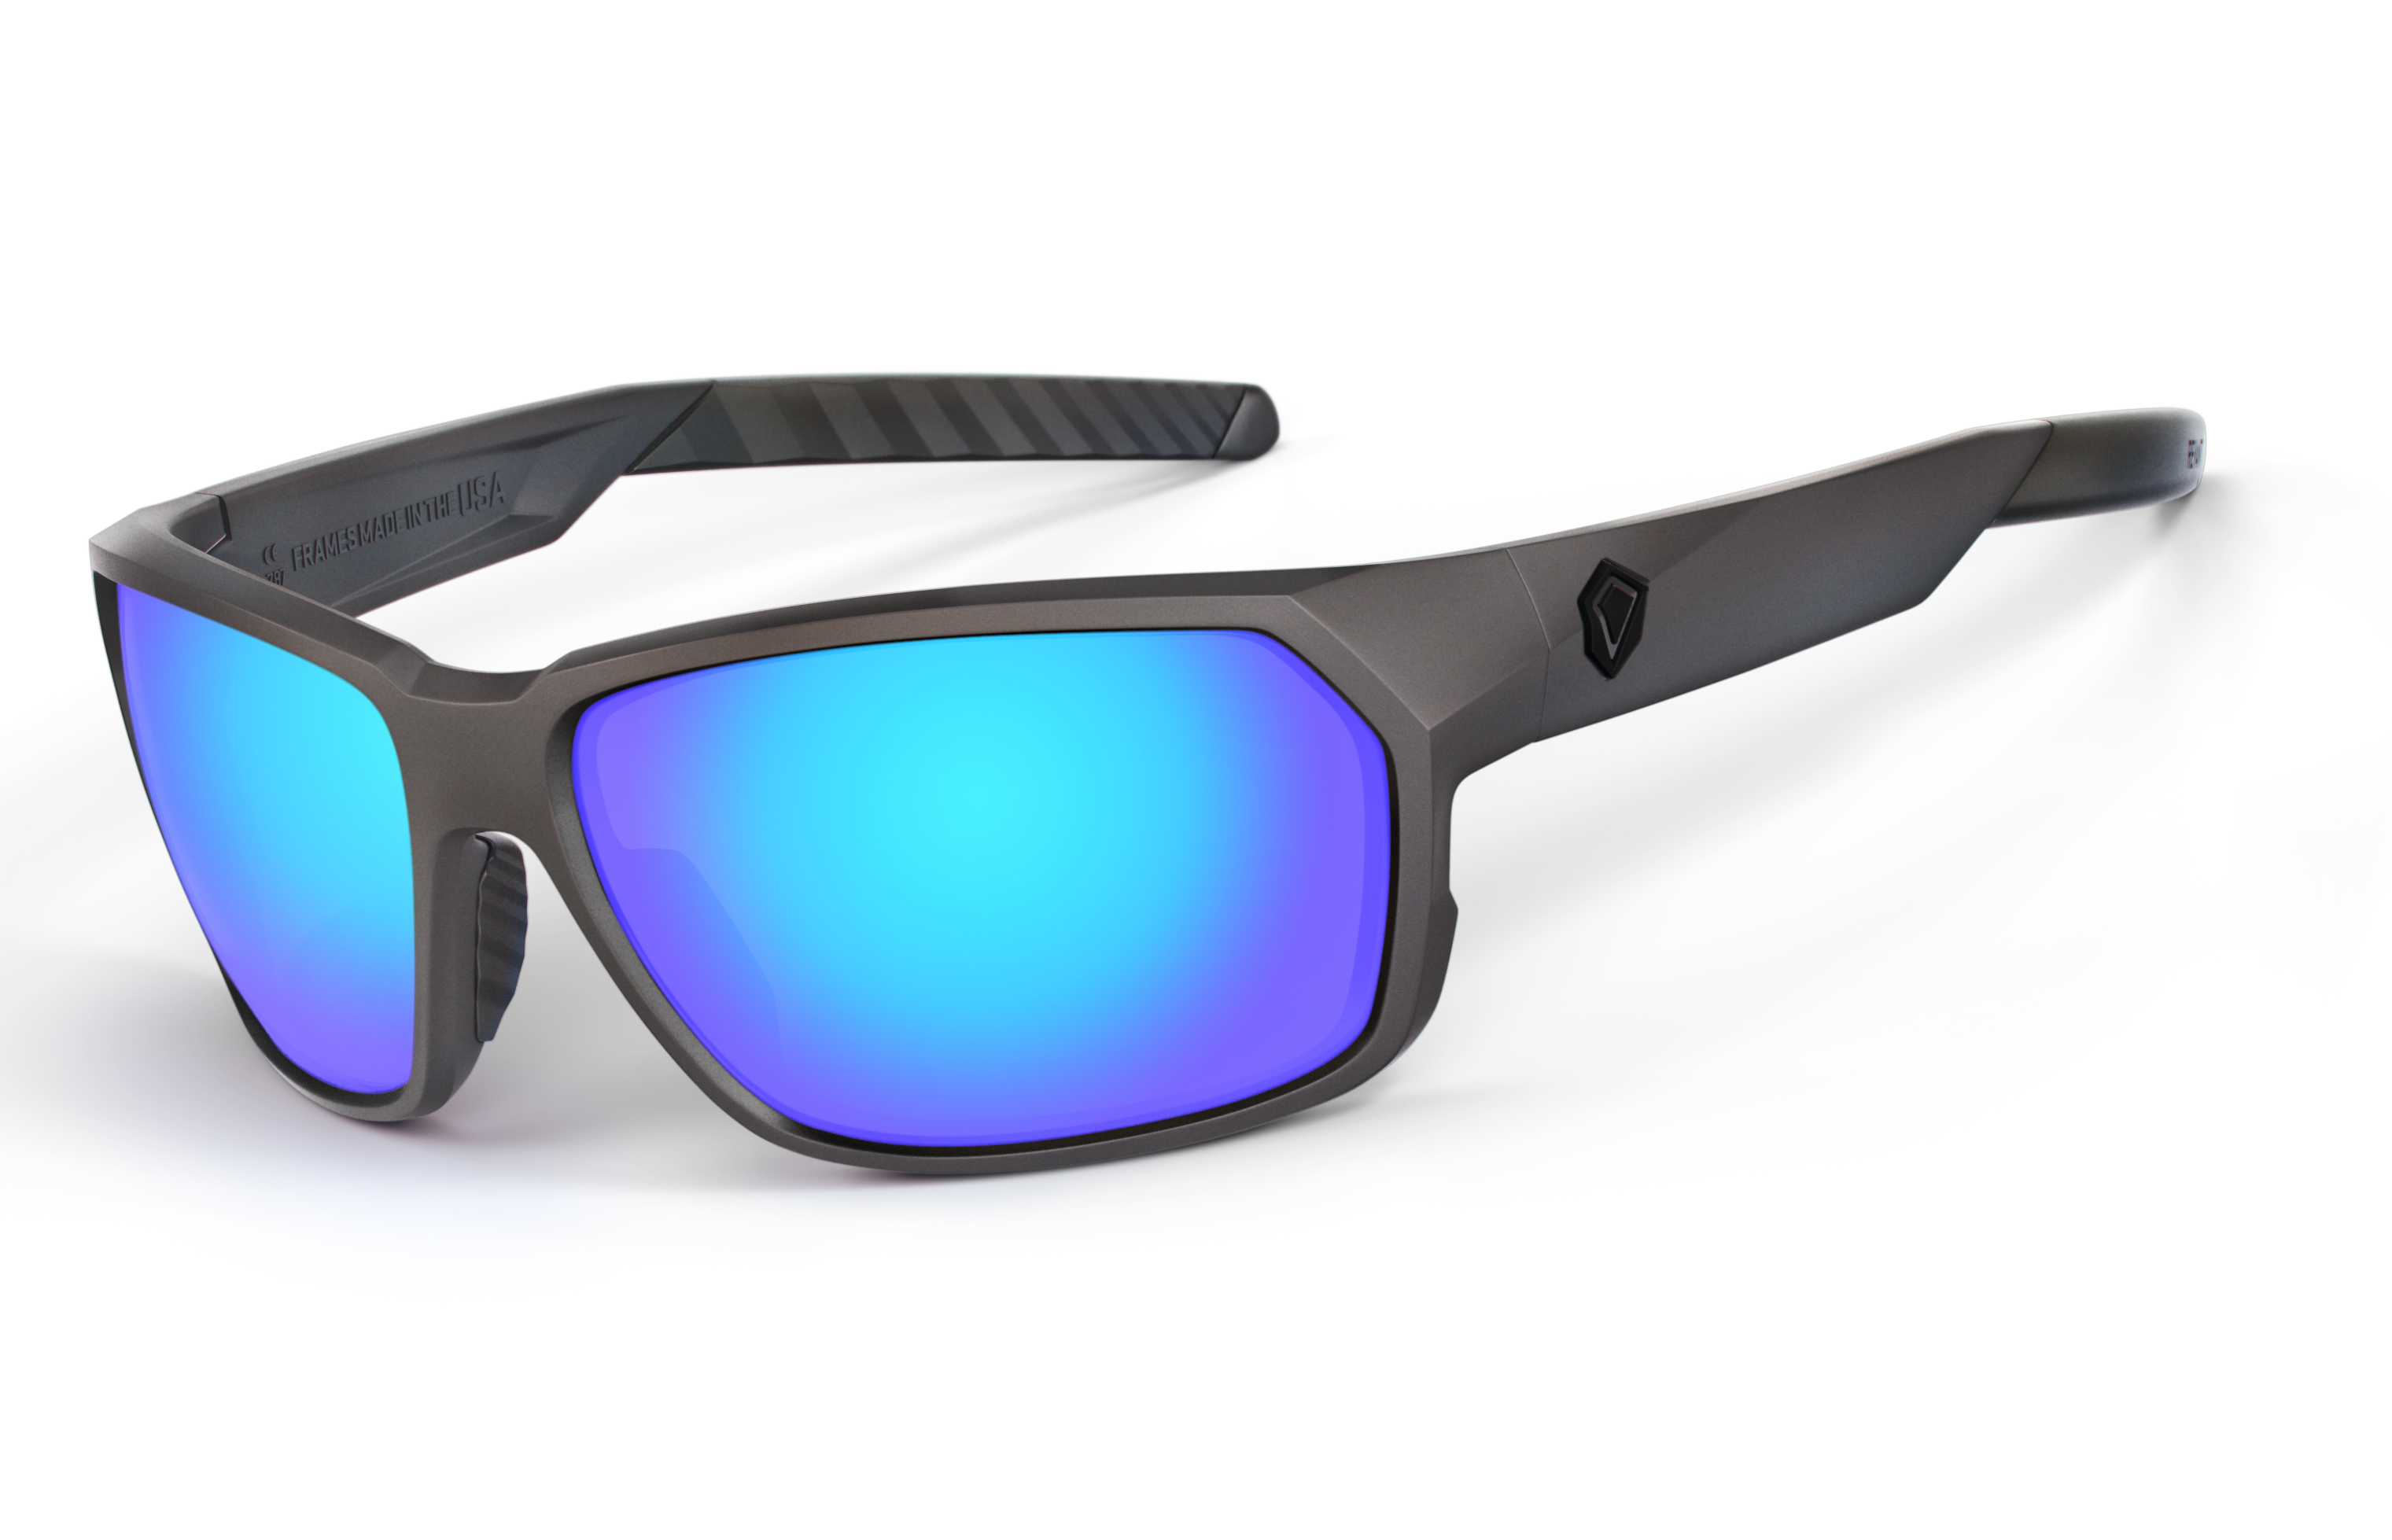 bf9c3e7aee Revant Wants to Be the Last Sunglasses You Ever Buy